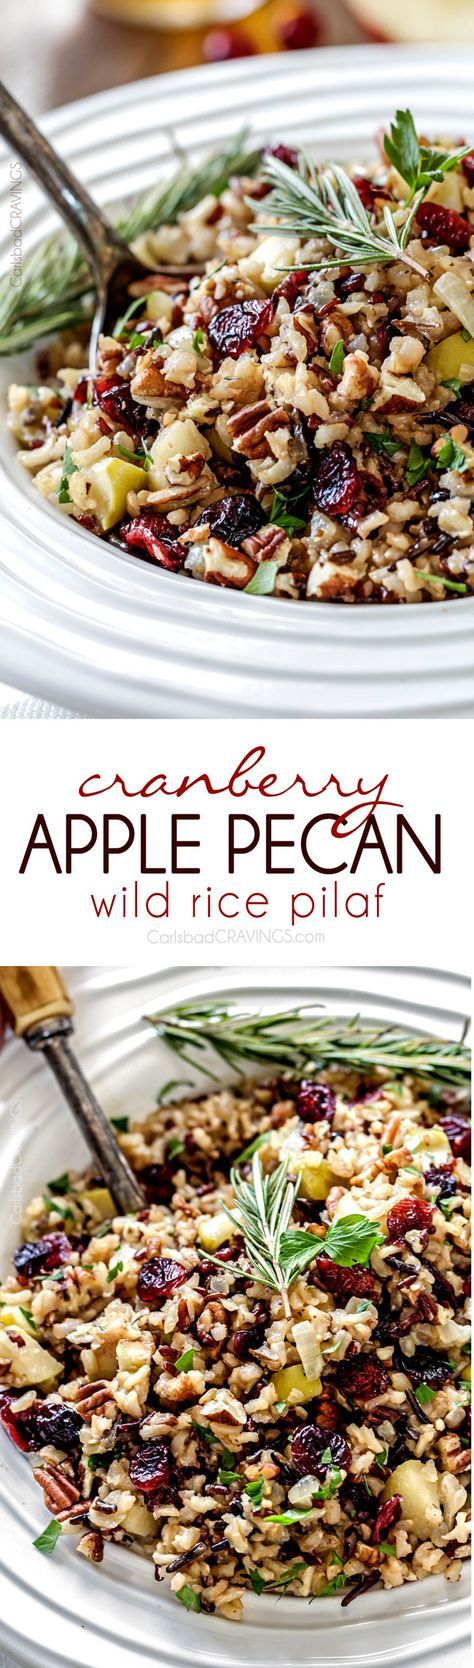 Cranberry Apple Pecan Wild Rice Pilaf.